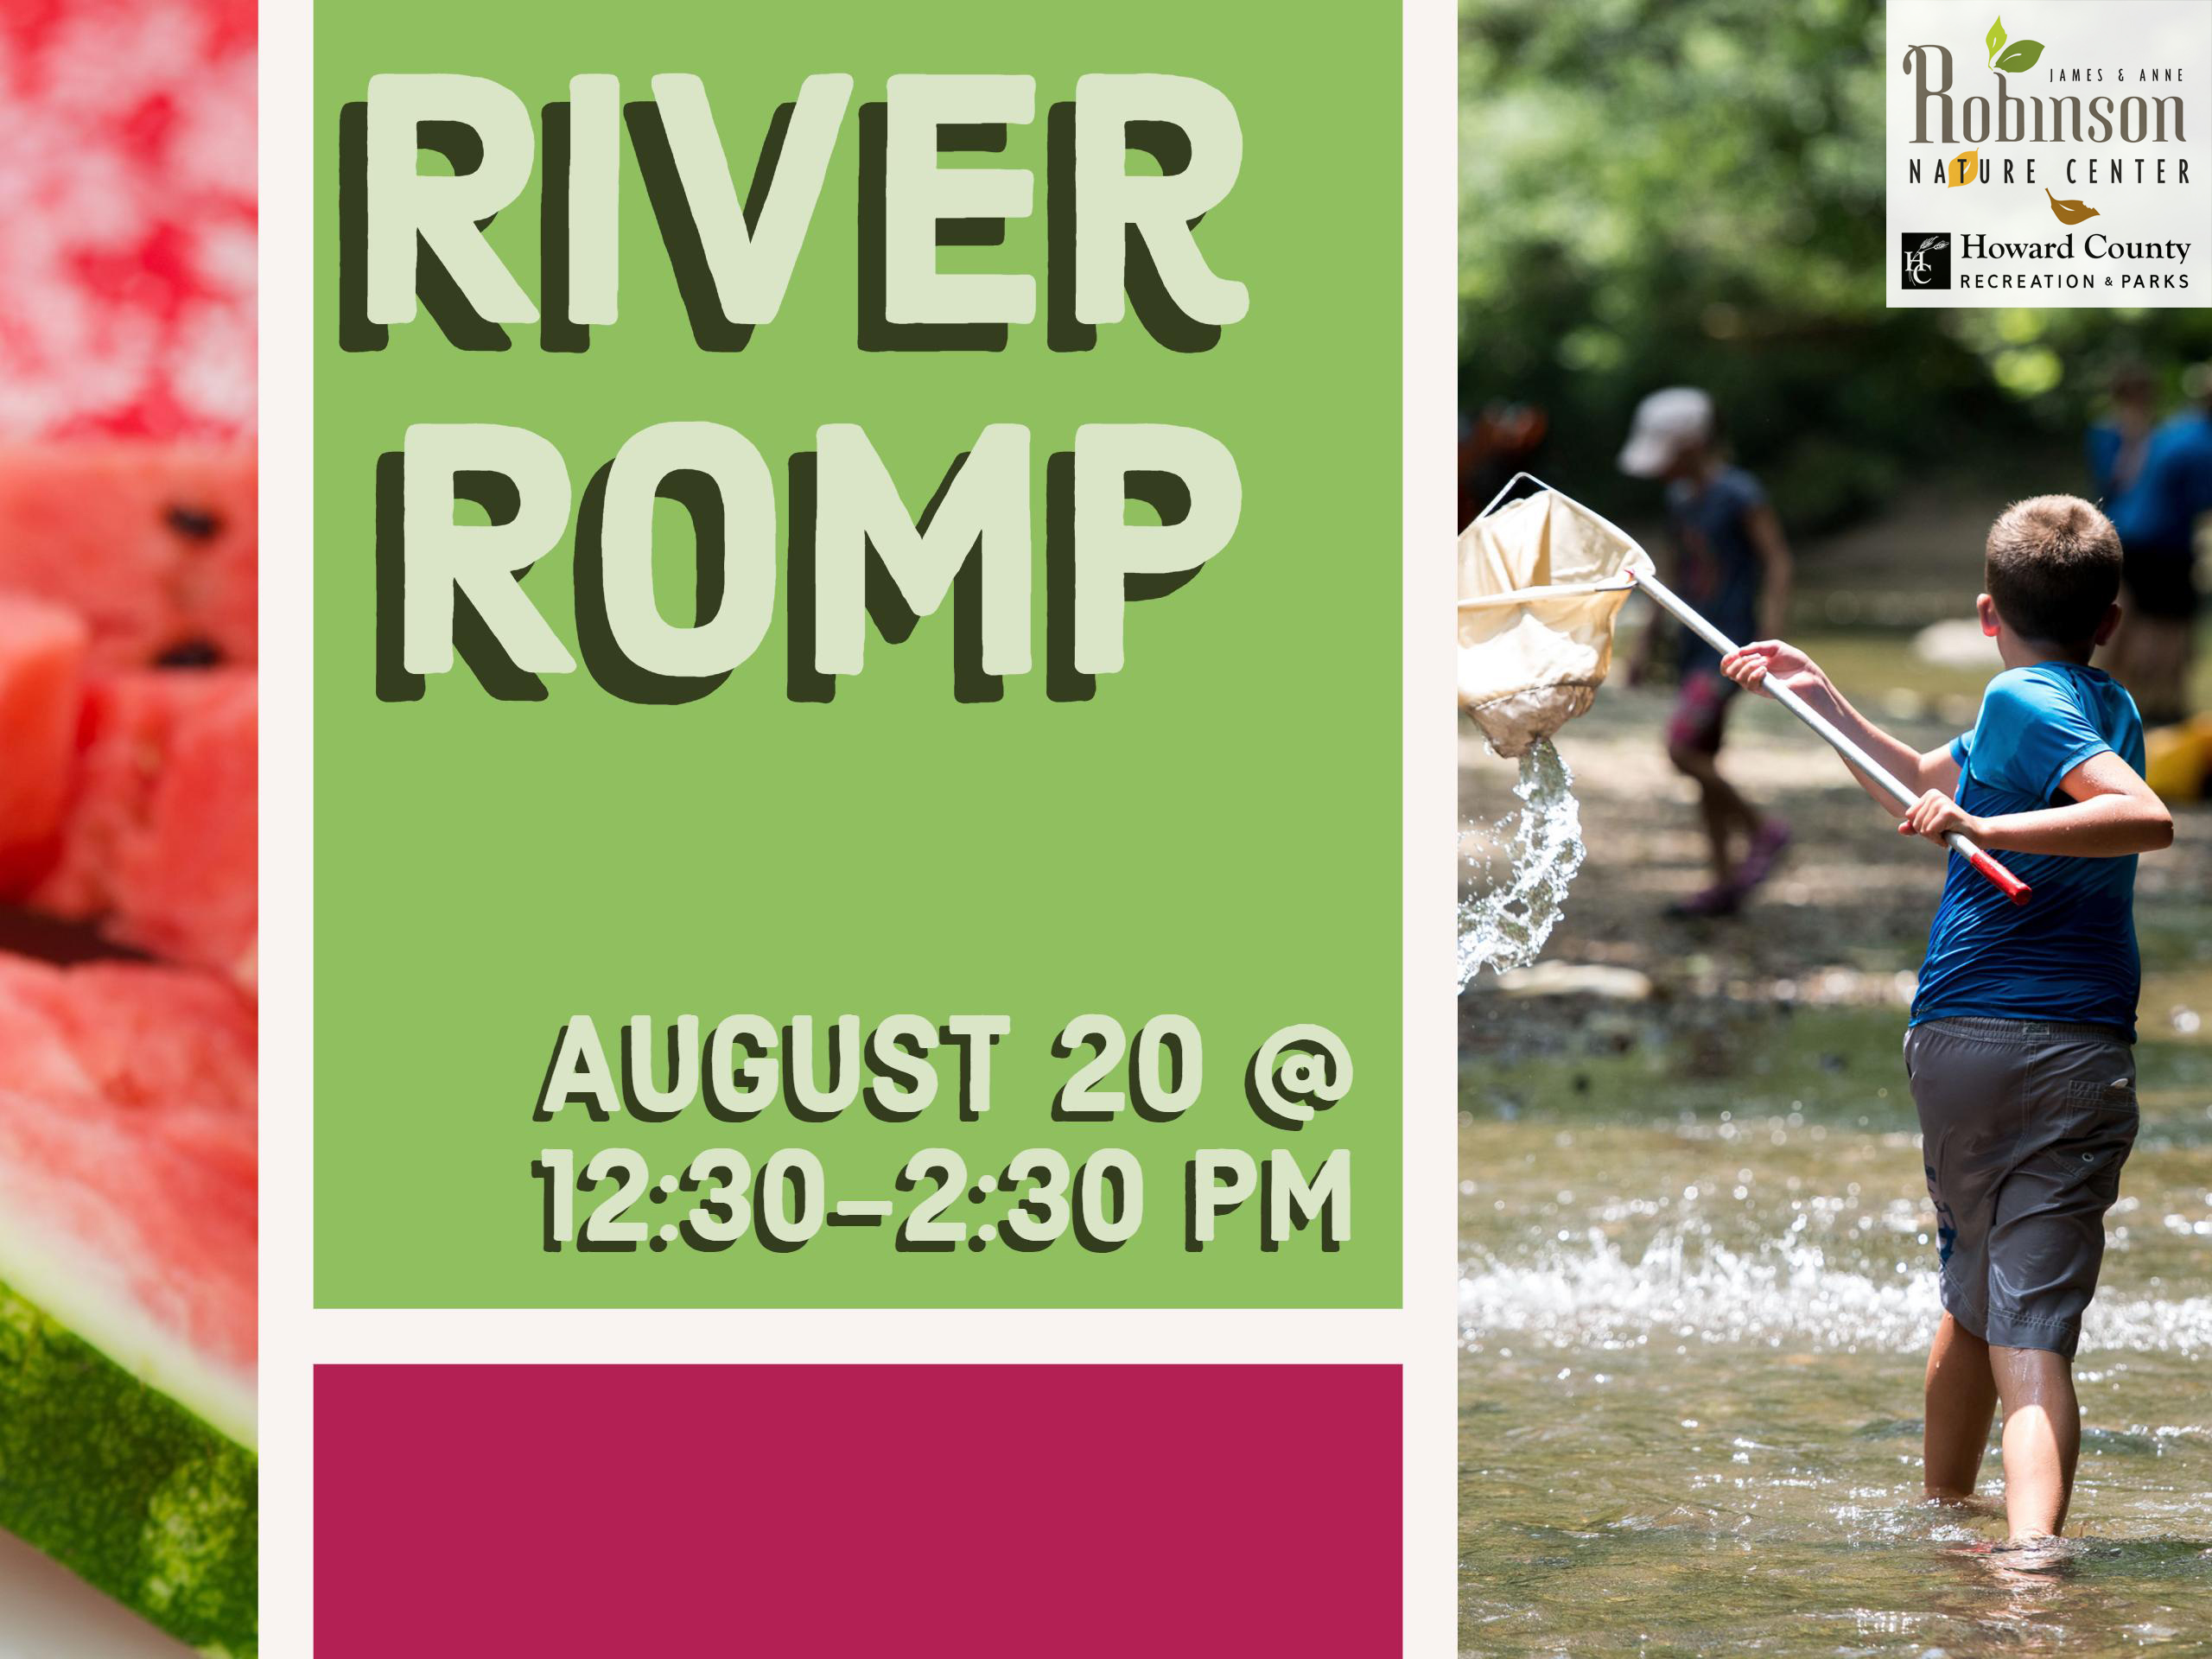 River Romp flyer